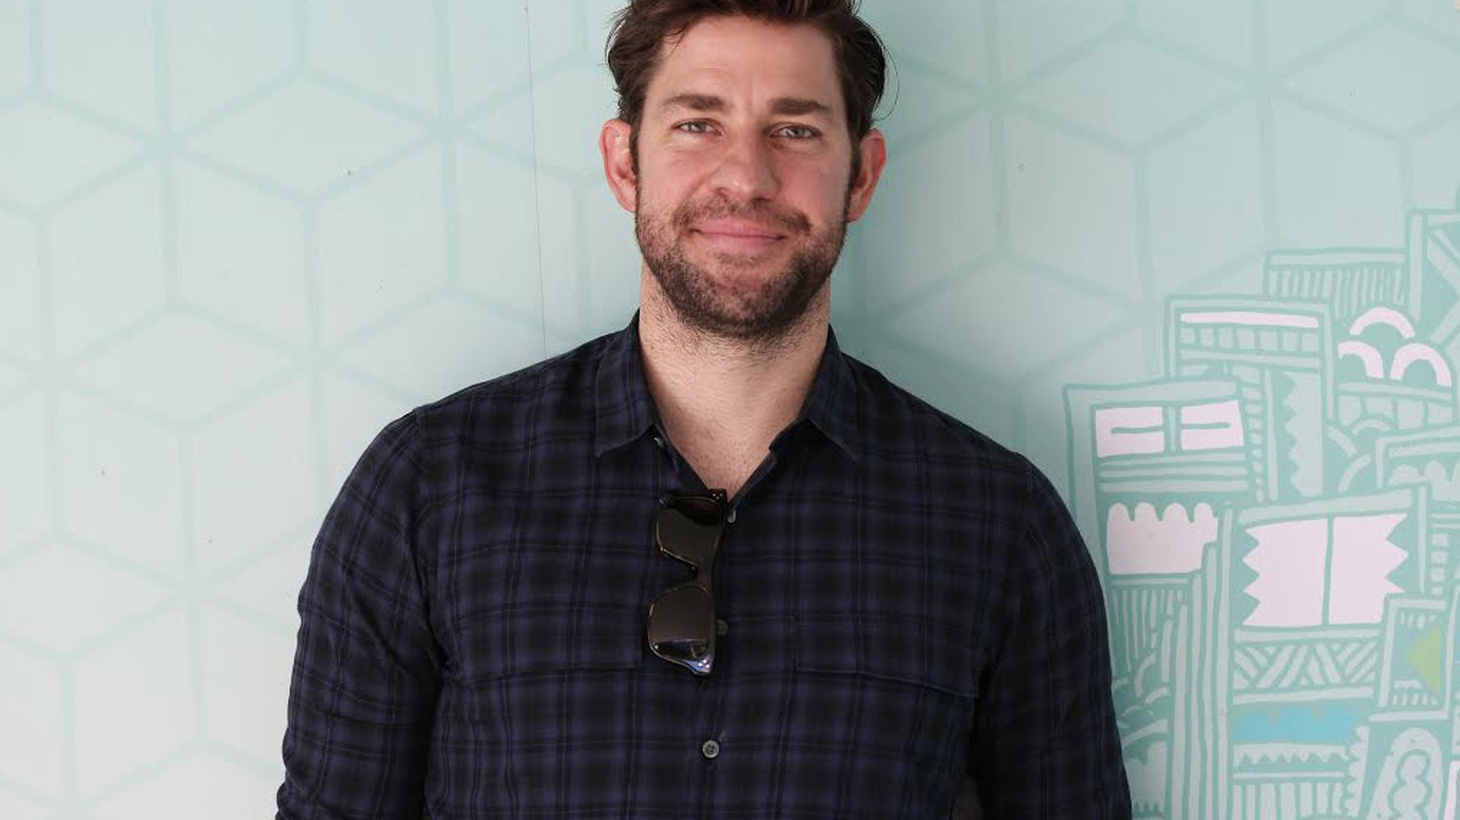 """Award-winning actor and director John Krasinski is beloved for his role as Jim Halpert on The Office. From the """"unbelievable talent"""" of Nick Drake and The Strokes, to a timeless classic by Bobby Darin, he talks about """"musical awakenings"""" from throughout his life."""